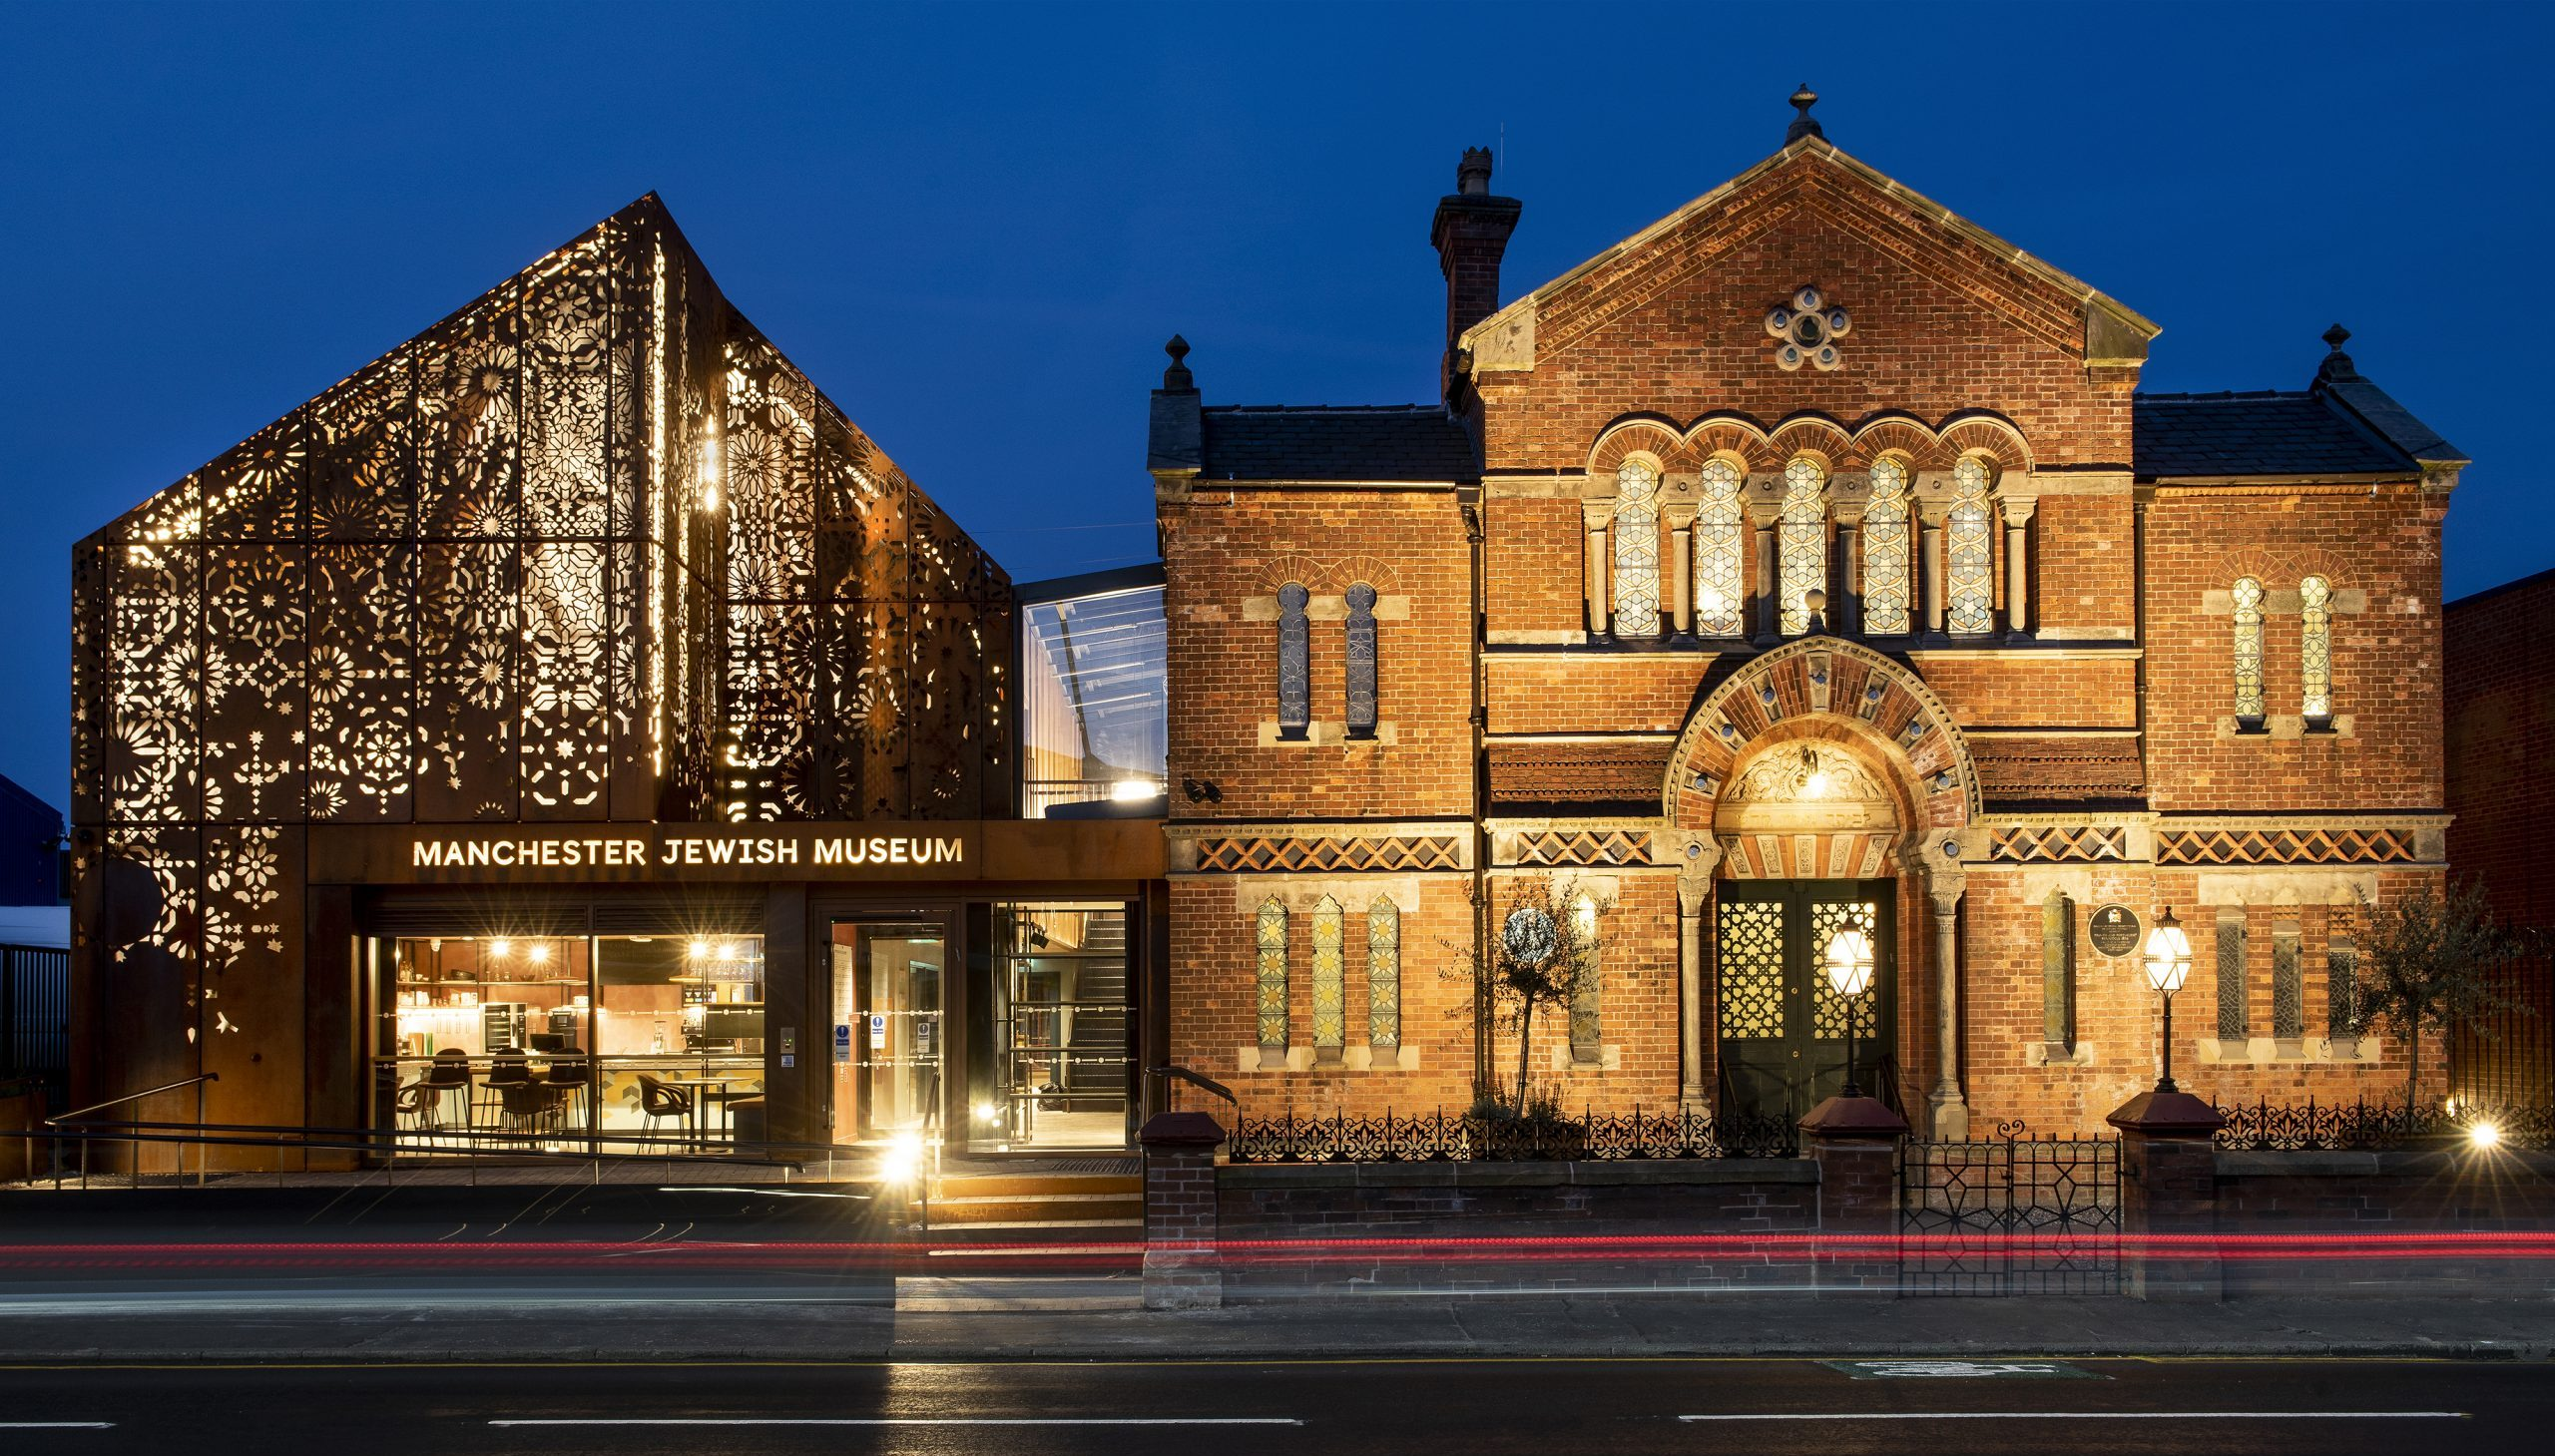 The £6m redevelopment includes a new extension and the restoration of the museum's former synagogue